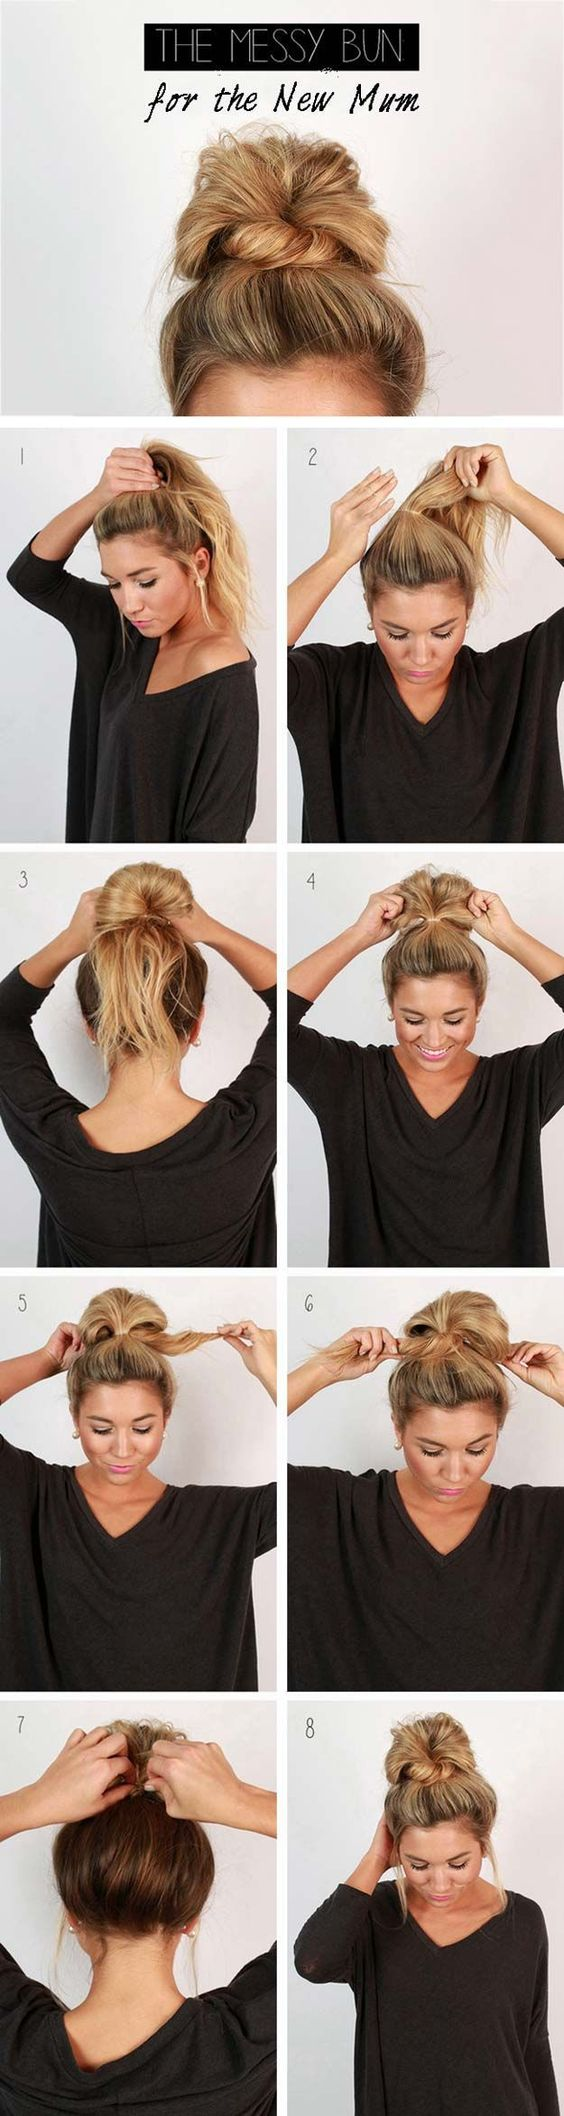 the messy bun